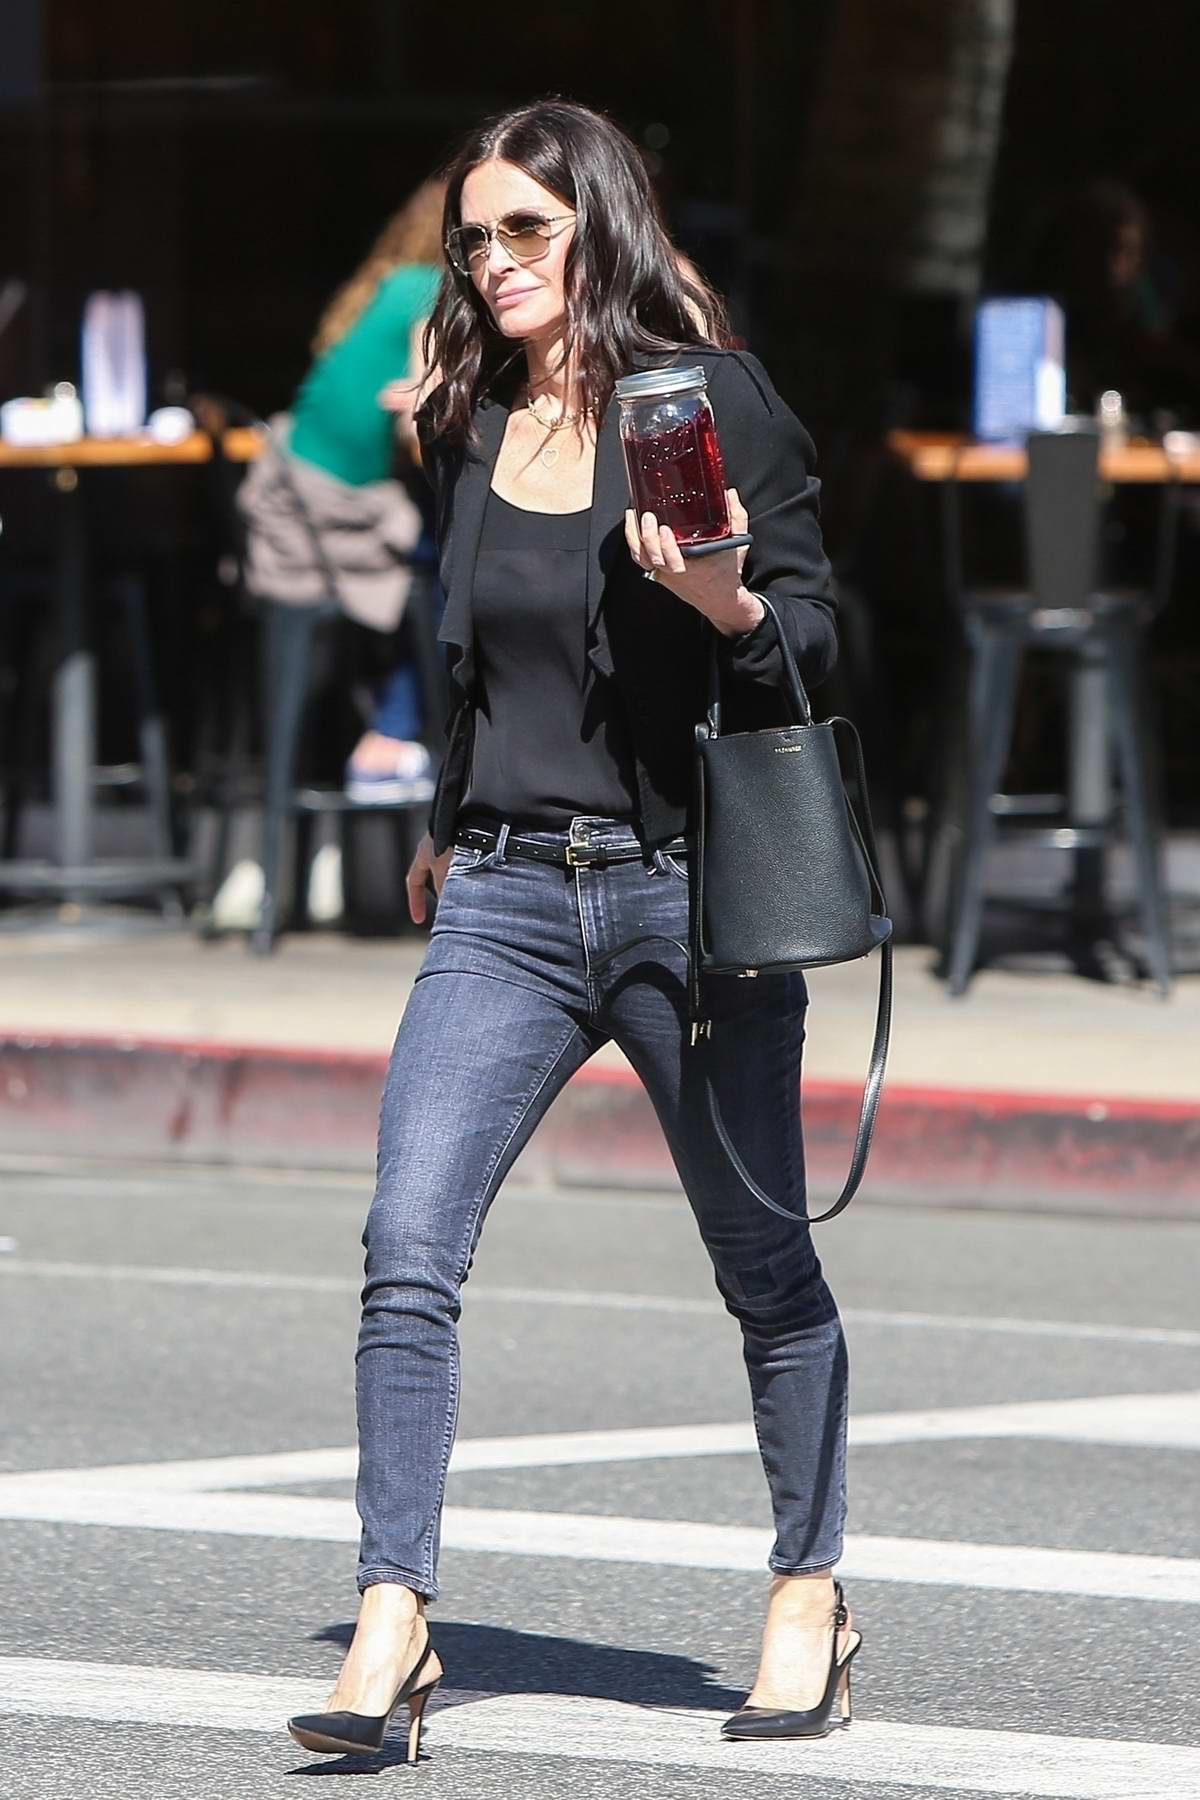 Courteney Cox is looking extra slim and fit as she crosses the street after attending a business meeting in Beverly Hills, Los Angeles